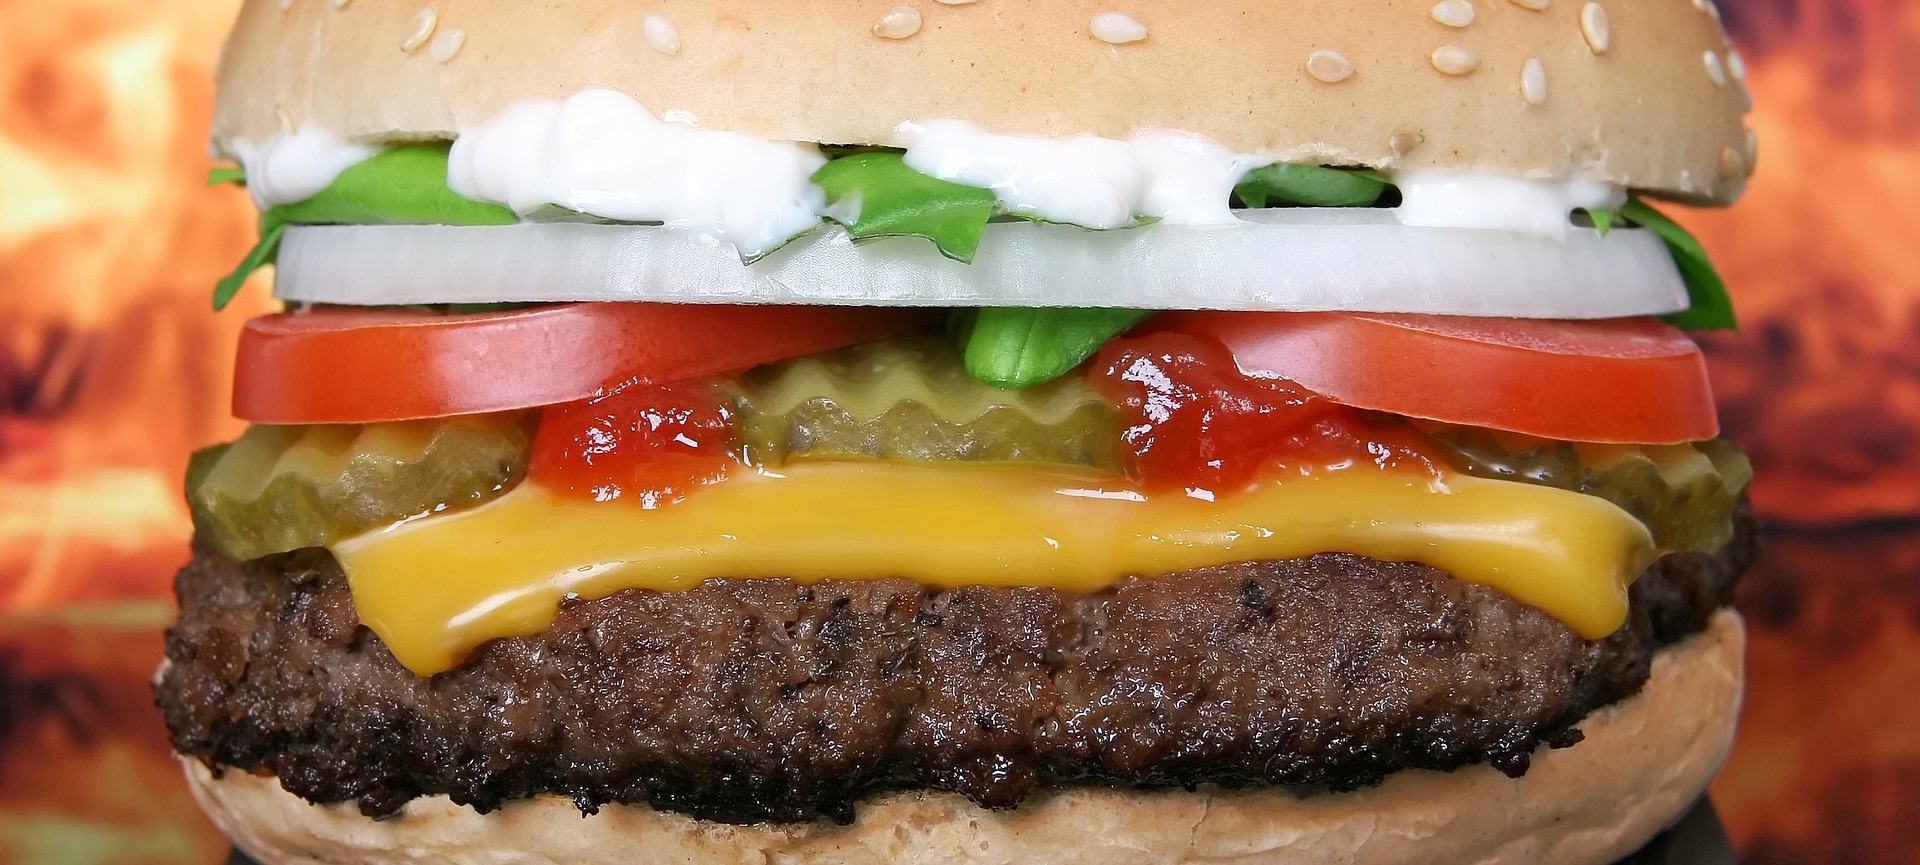 Burger King is bragging about… moldy burgers?